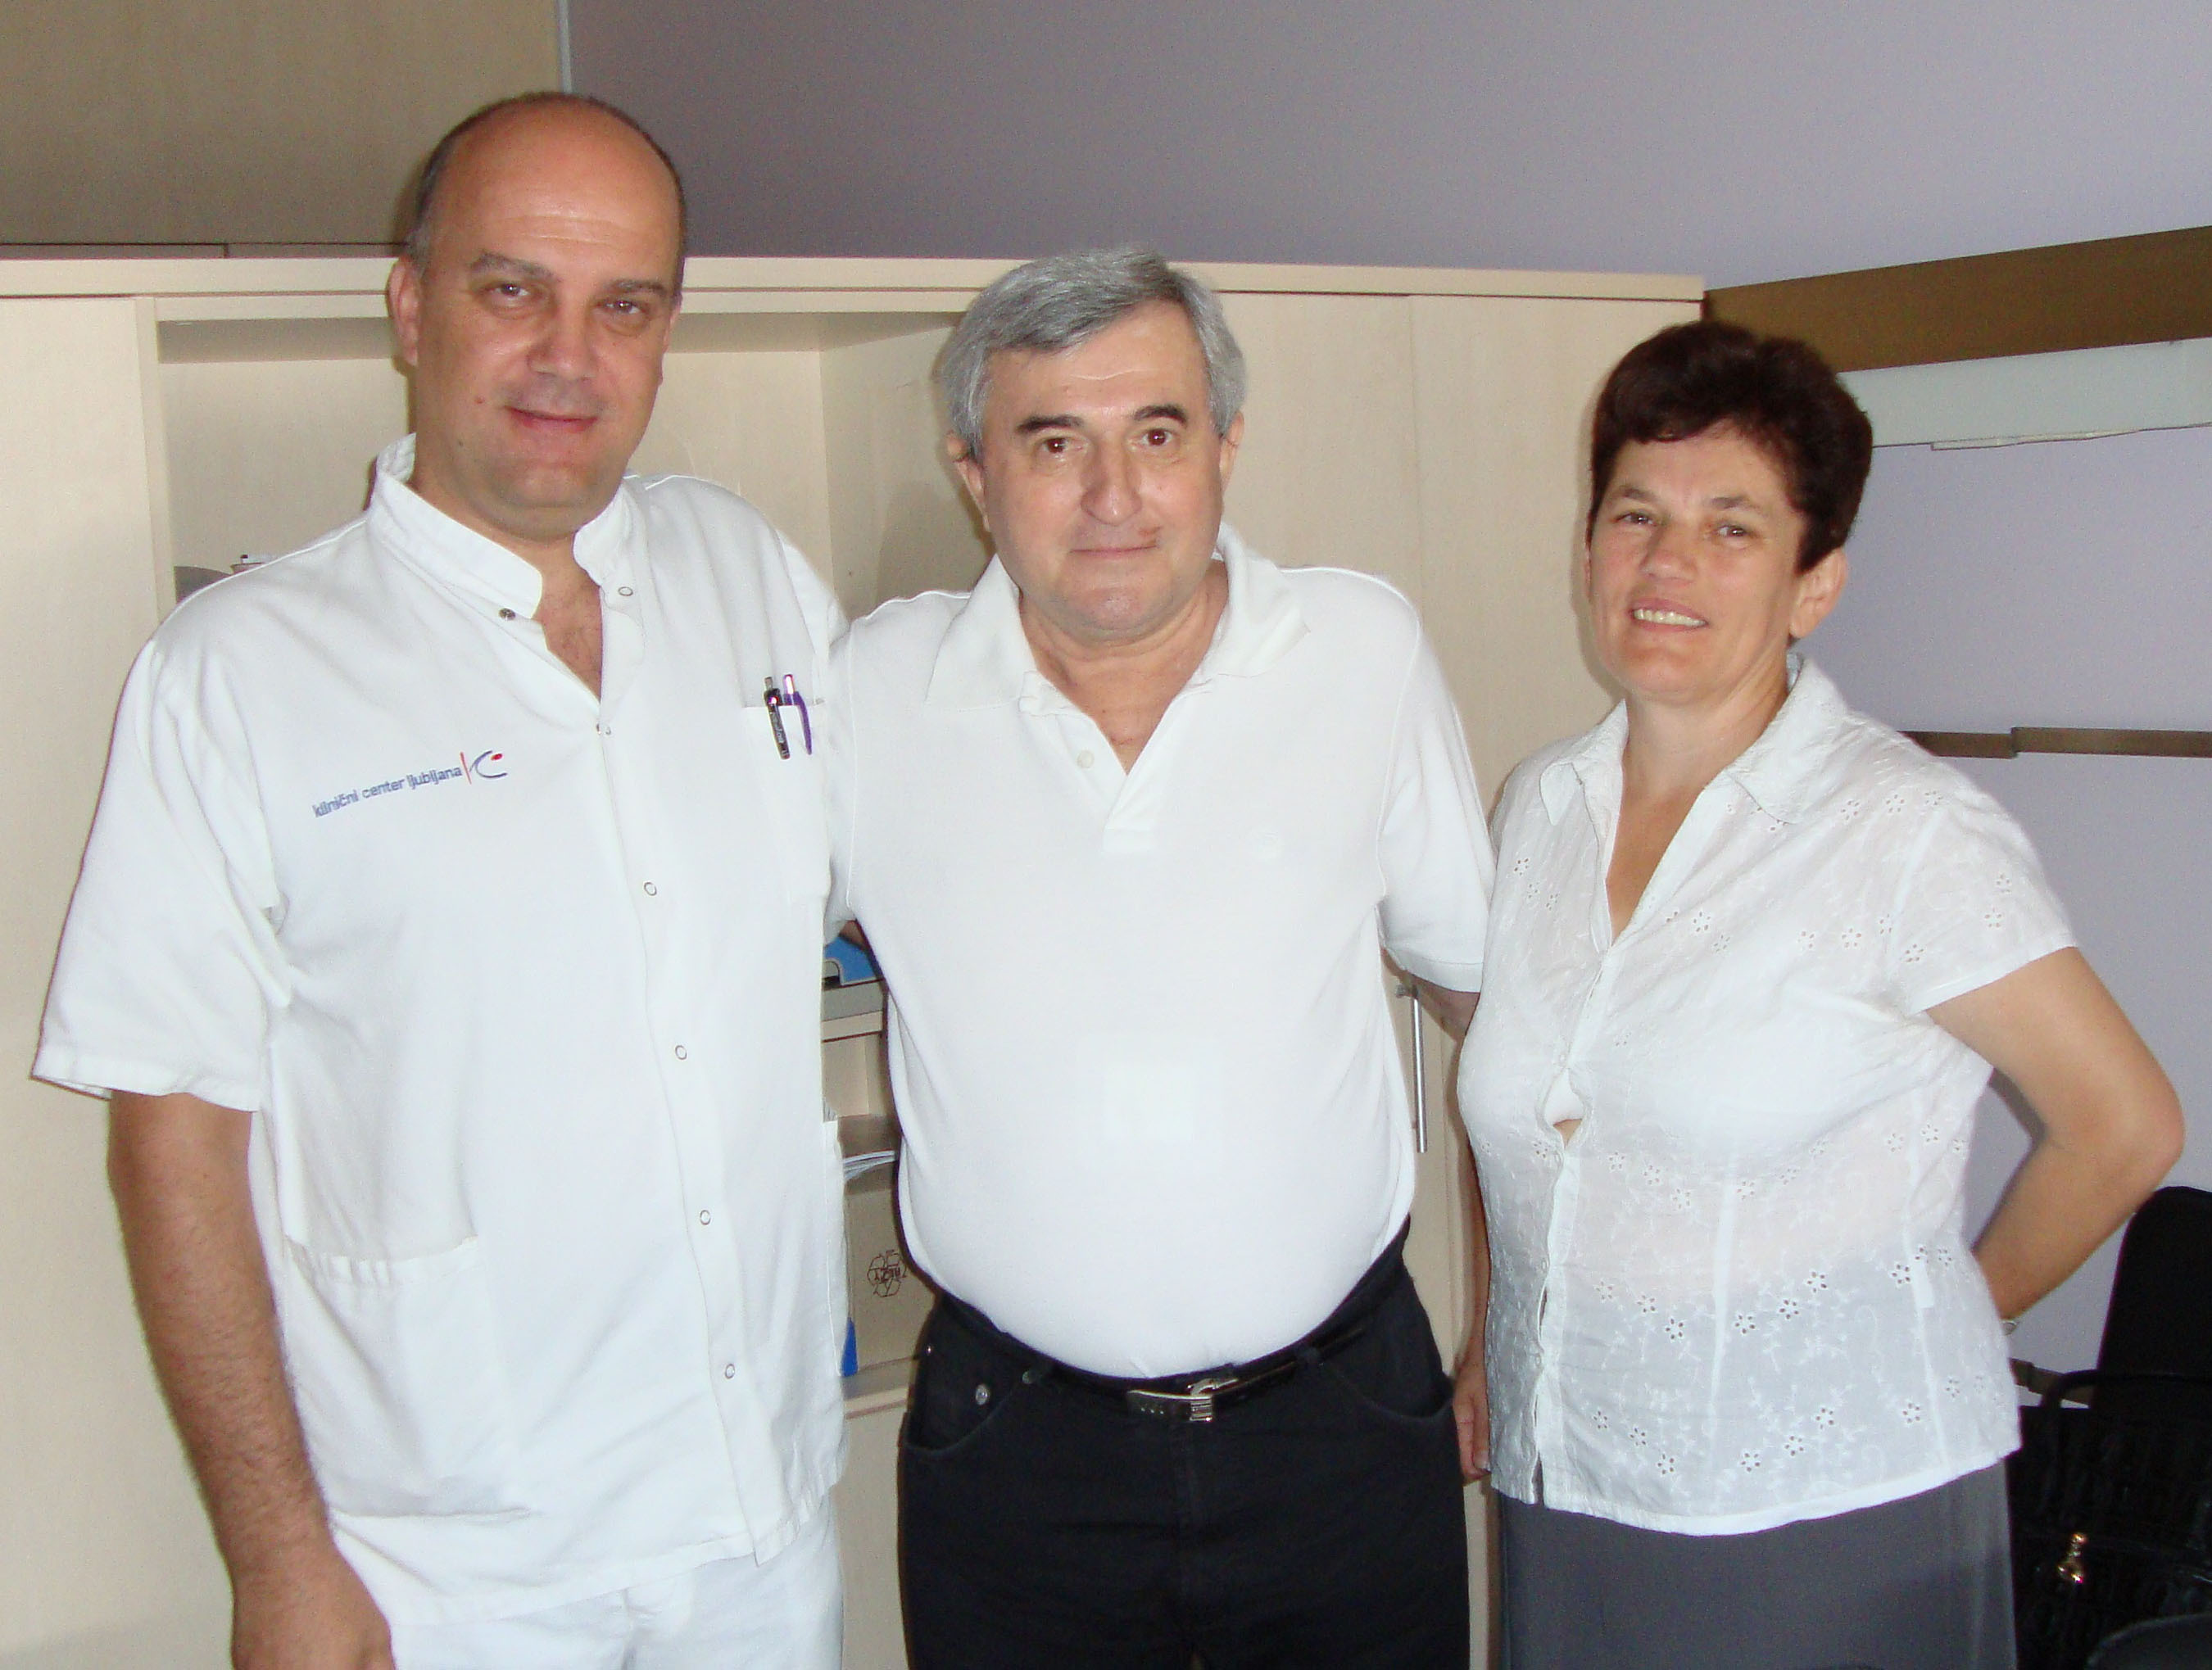 Slovenia's first SynCardia Total Artificial Heart patient Nikola Gaspic (middle) was bridged to a heart transplant on July 1, 2012. He is pictured post-transplant with his surgeon Dr. Ivan Knezevic and his wife Danica at University Medical Center (UMC) Ljubljana.  (PRNewsFoto/SynCardia Systems, Inc.)